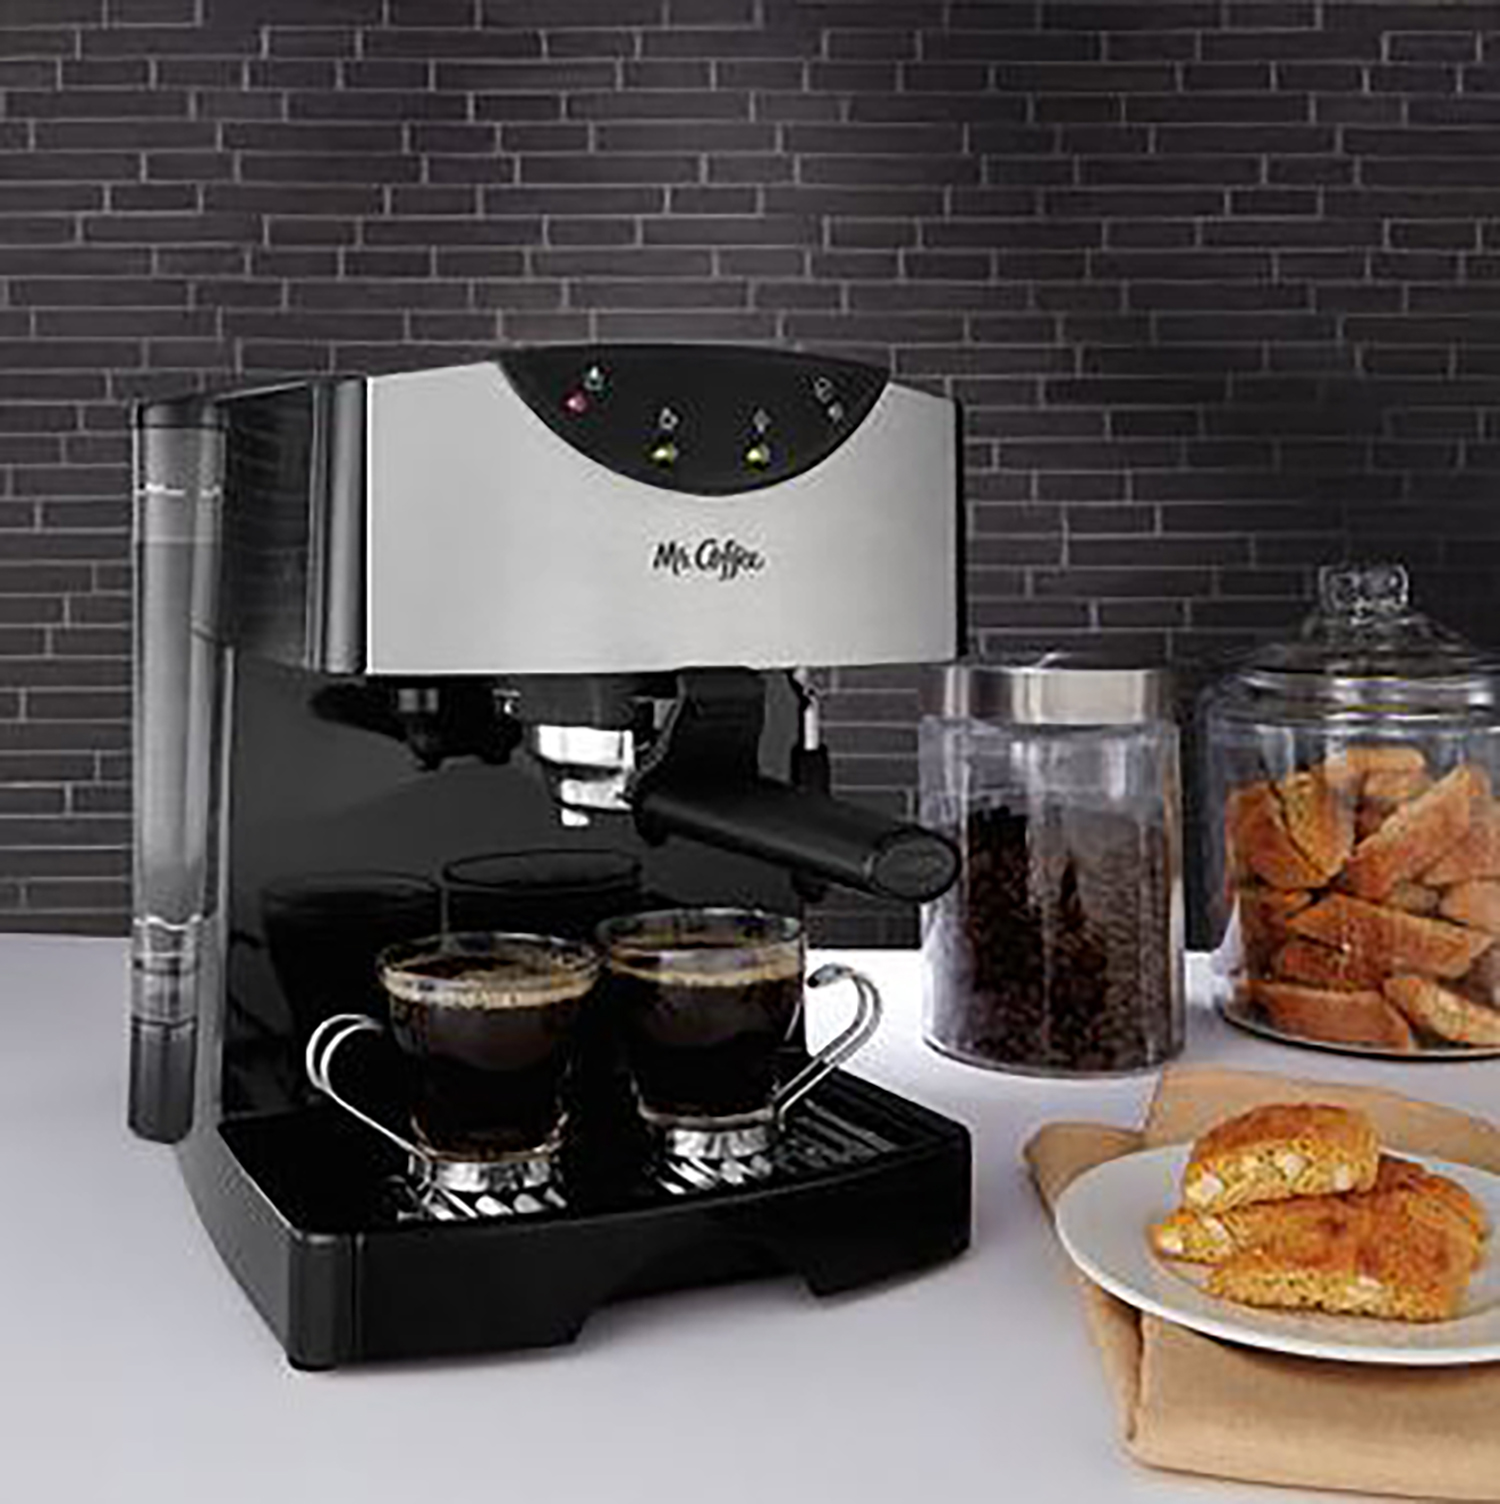 mr coffee cafe automatic dual shot pump espresso and cappuccino steam maker ebay. Black Bedroom Furniture Sets. Home Design Ideas